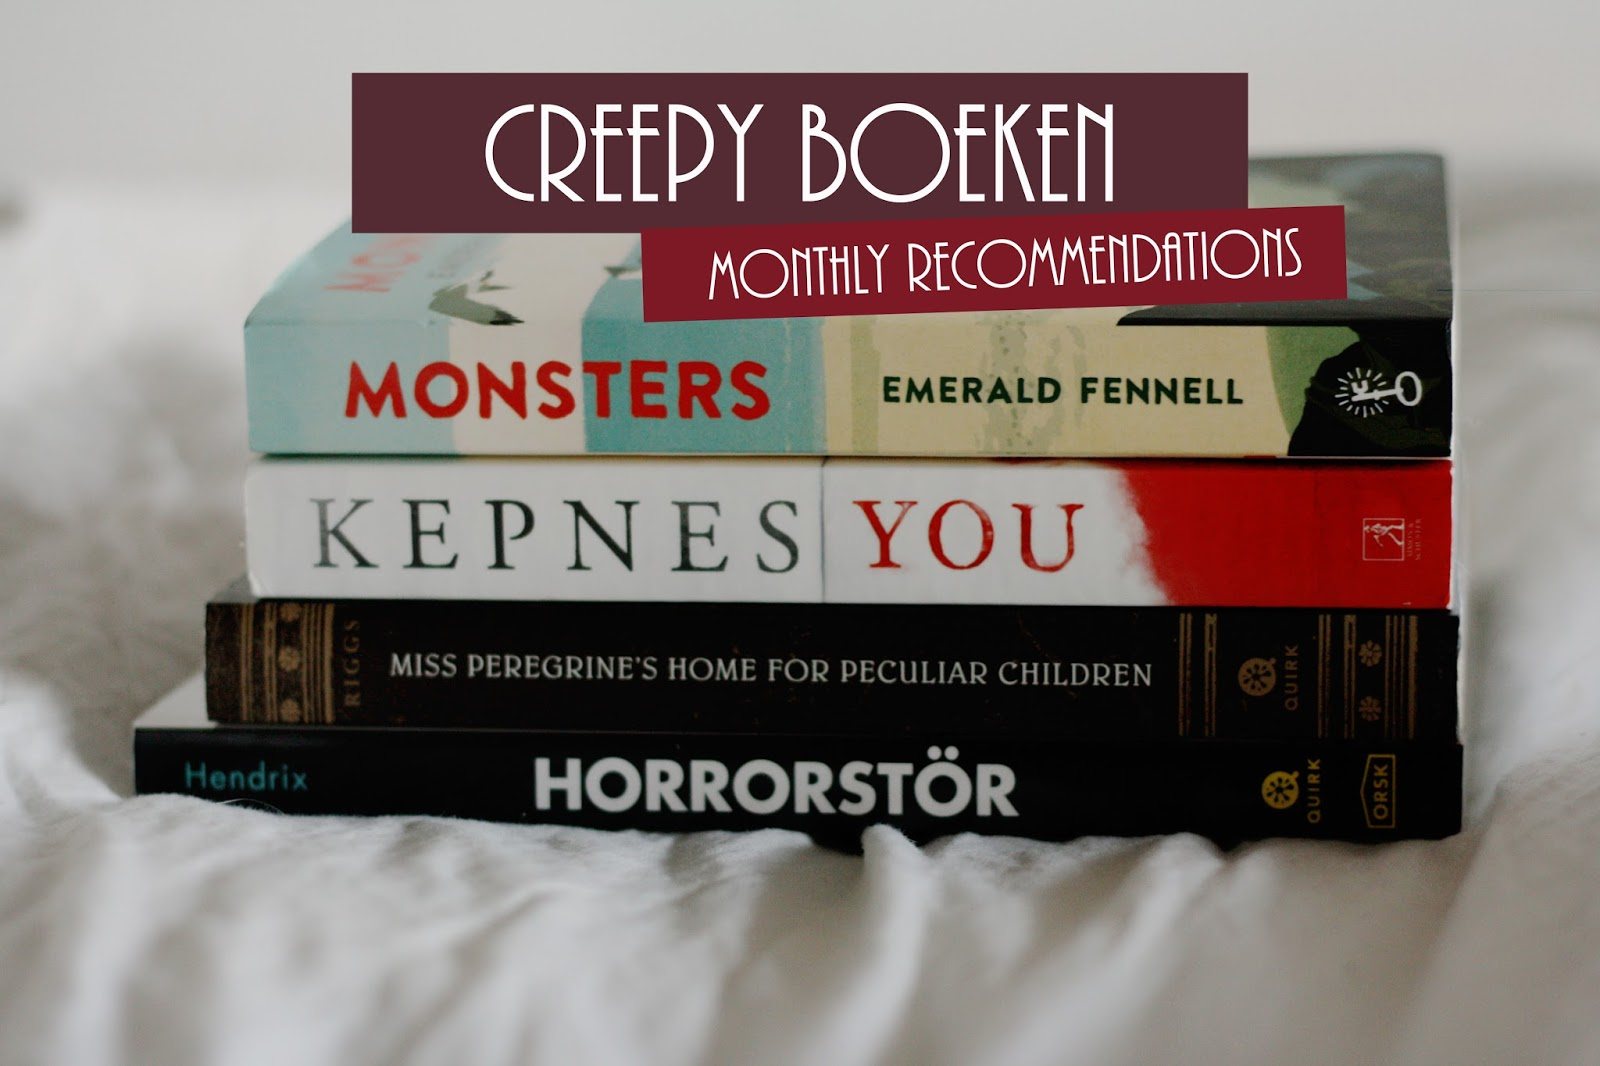 Monthly Reccomendations: Creepy Boeken - thestoryhour.nl